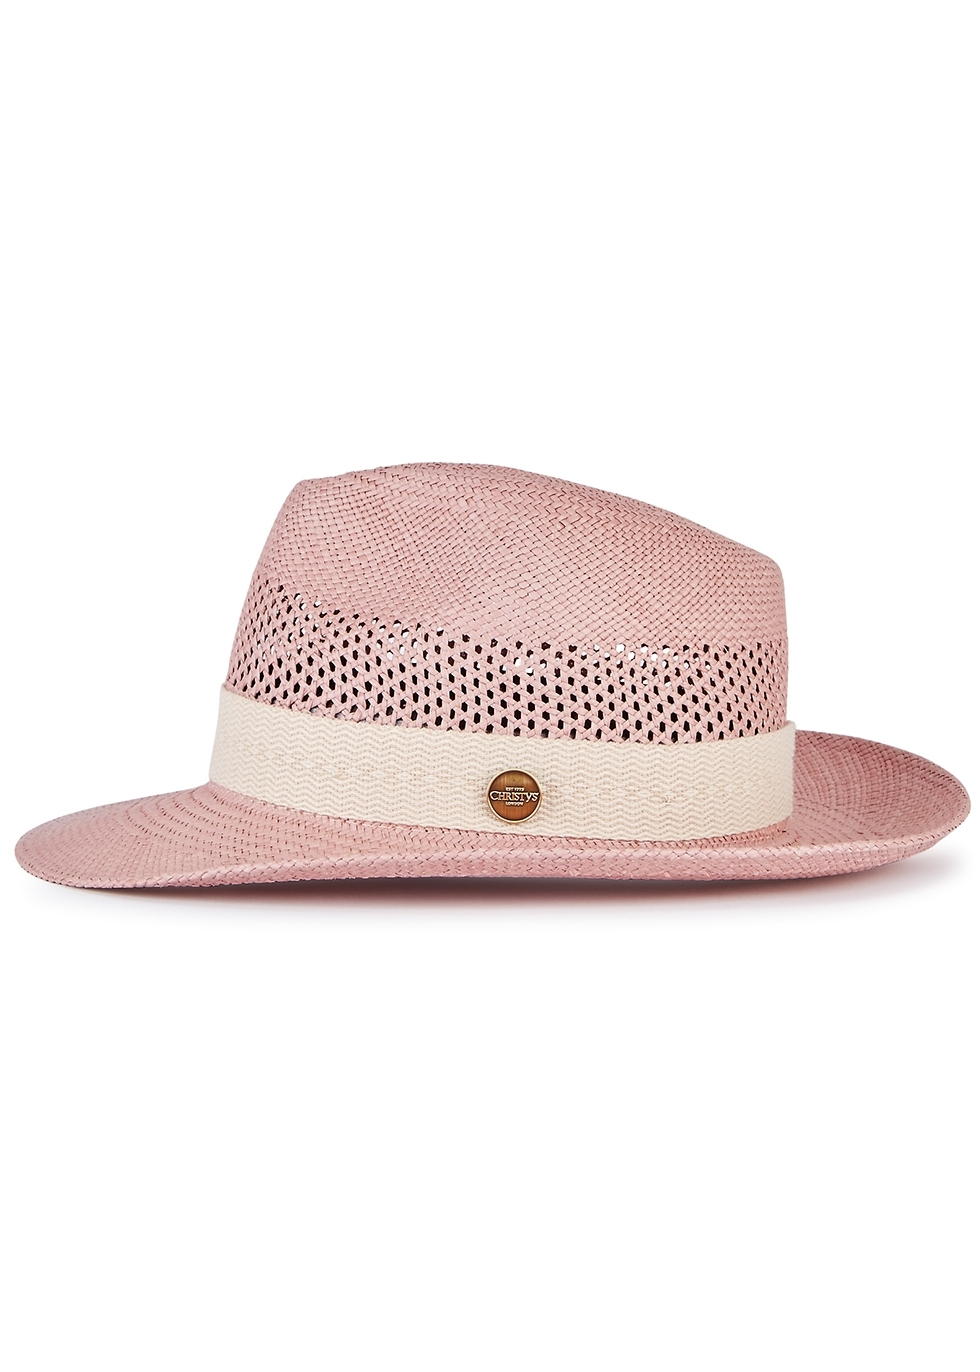 Women s Designer Hats f3551e404